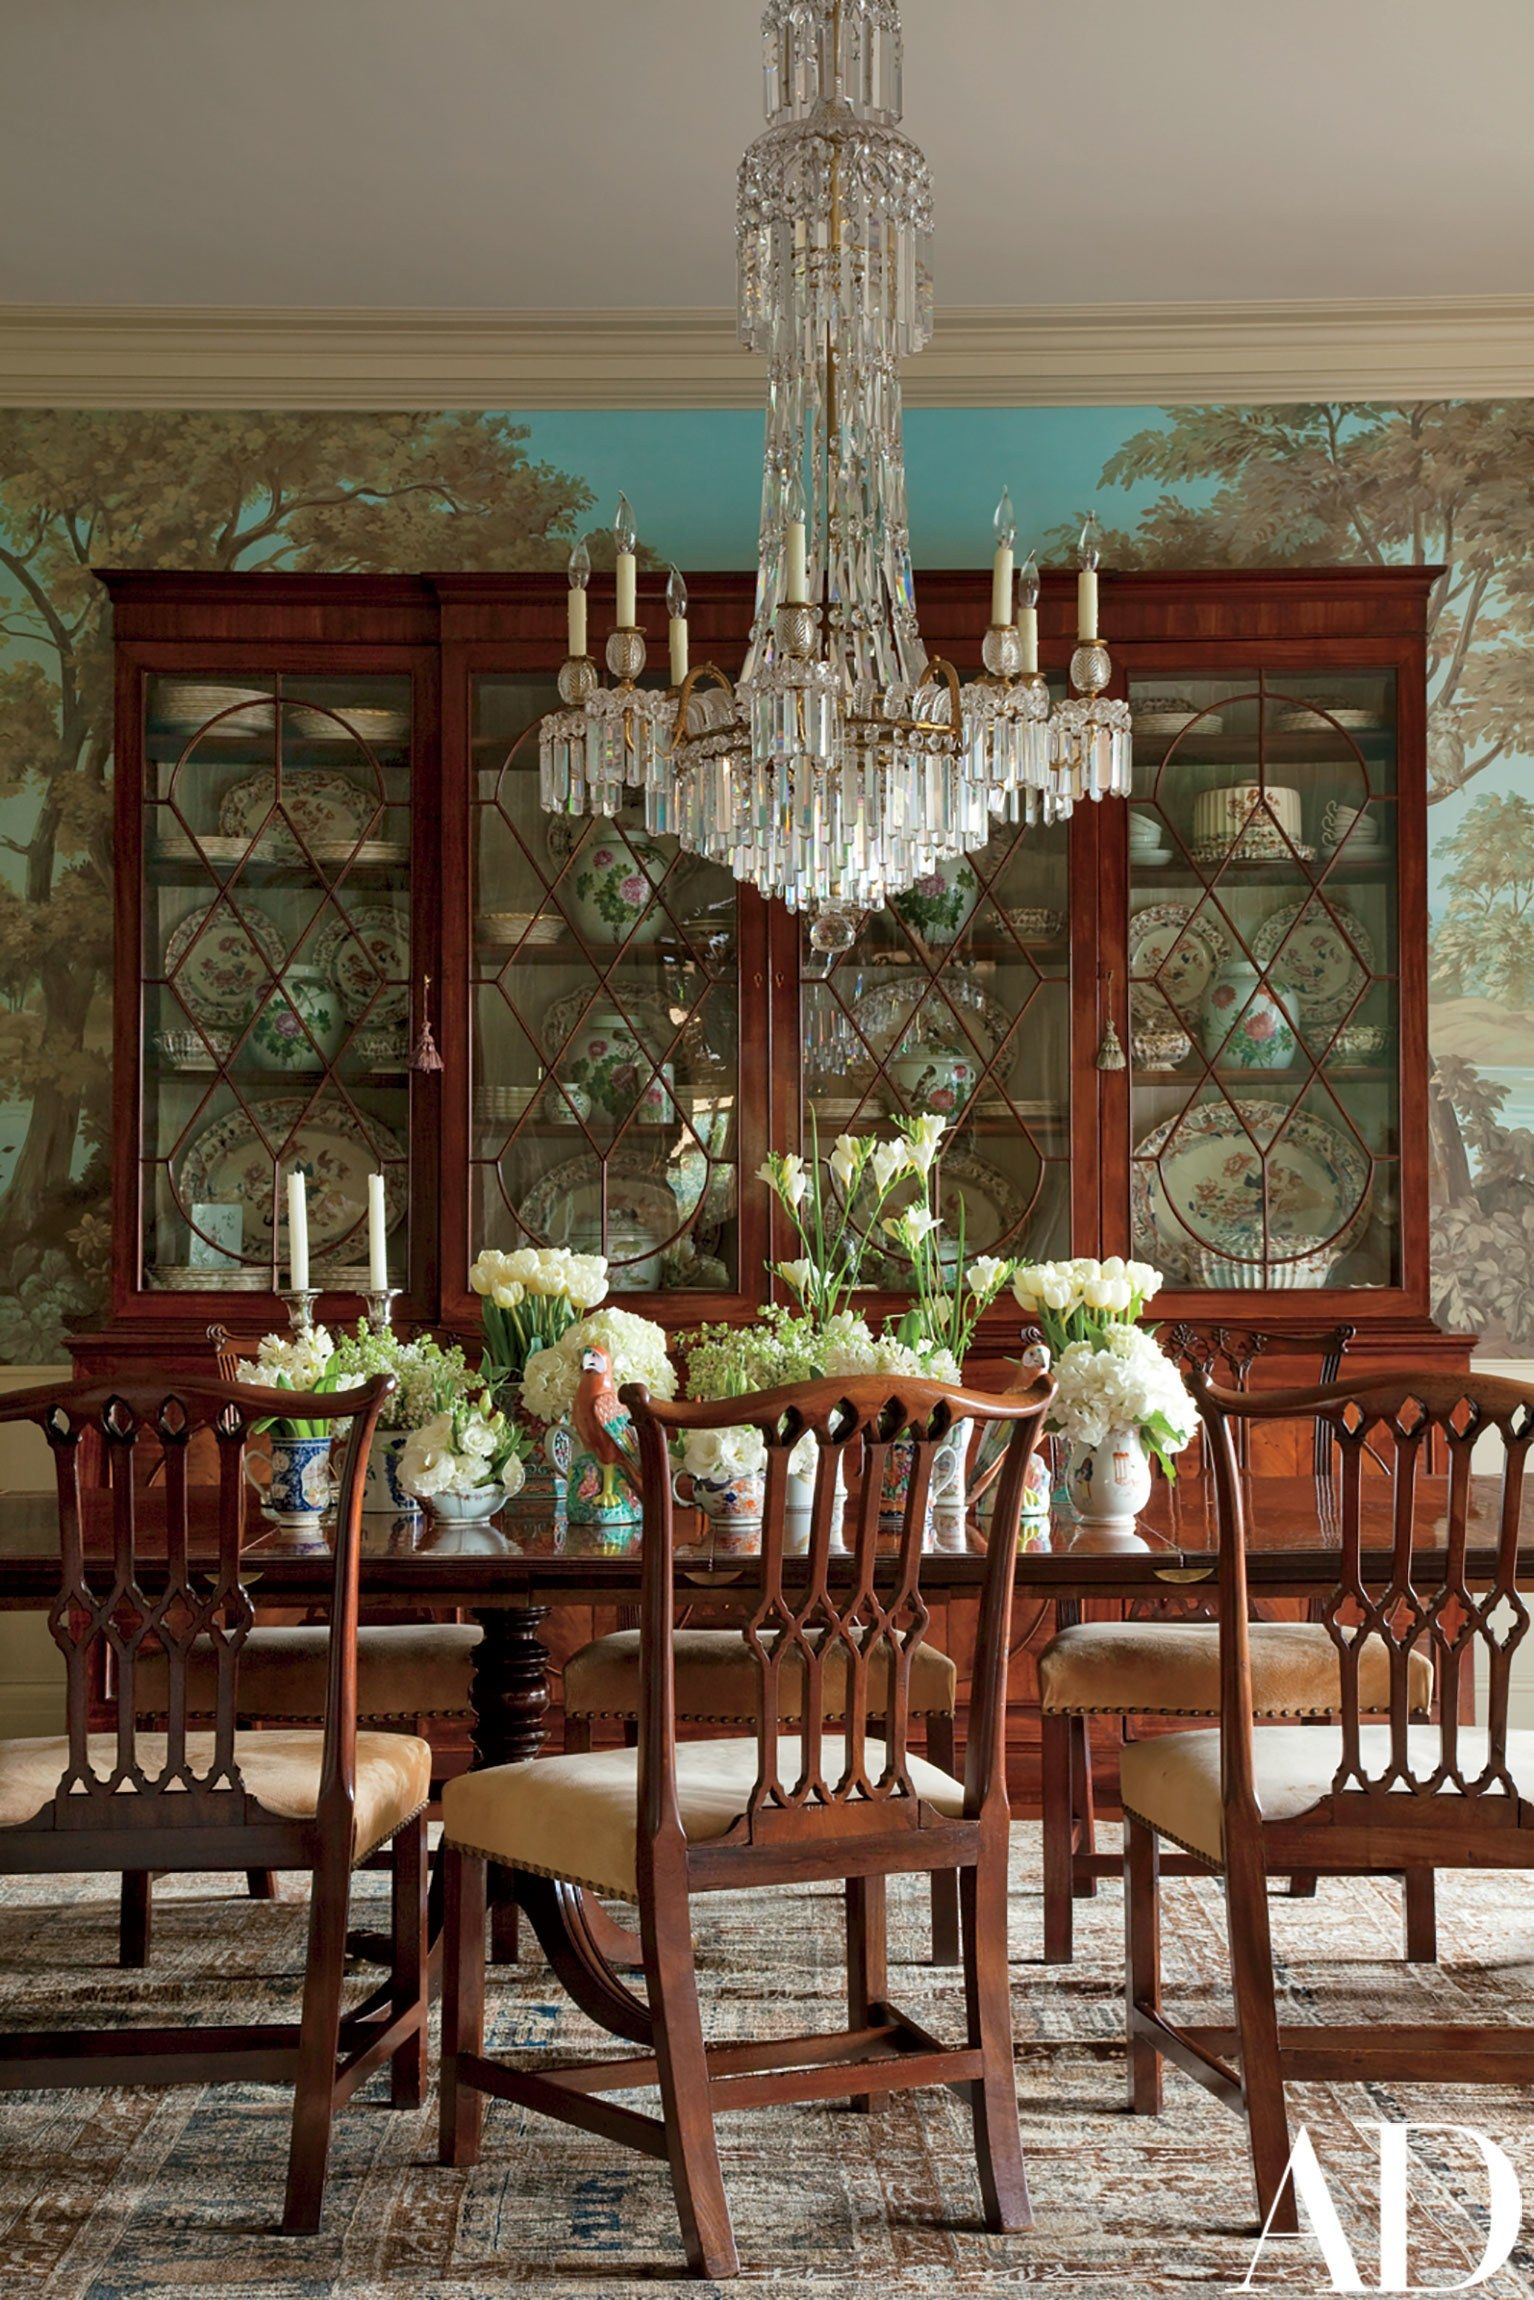 In The Dining Room, Chippendale Chairs Found In London Surround A Mahogany  Pedestal Table; The Regency Period Crystal Chandelier And Massive  Breakfront Are ...